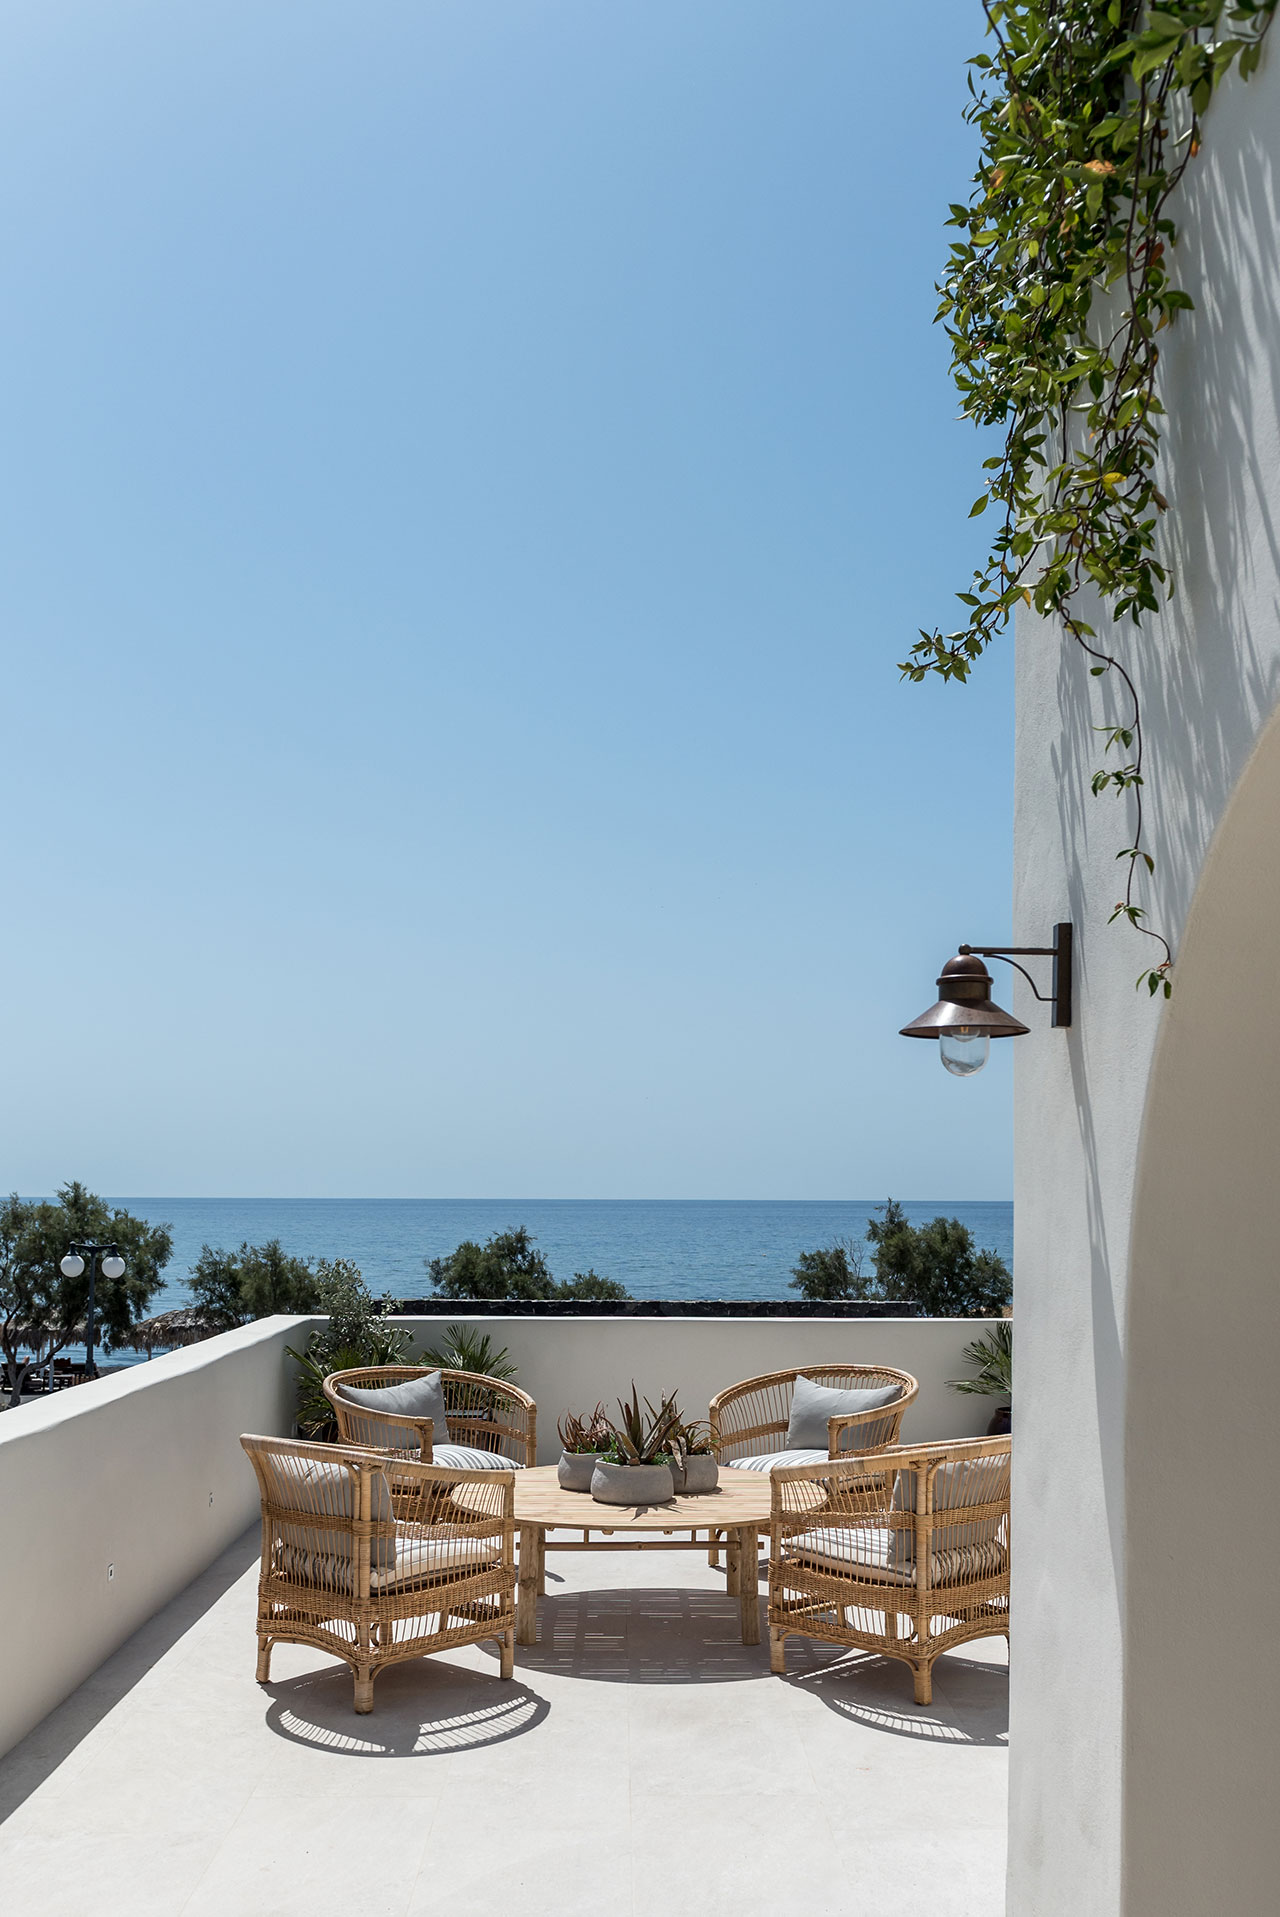 Photo by Giorgos Sfakianakis © ISTORIA Hotel, Perivolos, Santorini, Greece.